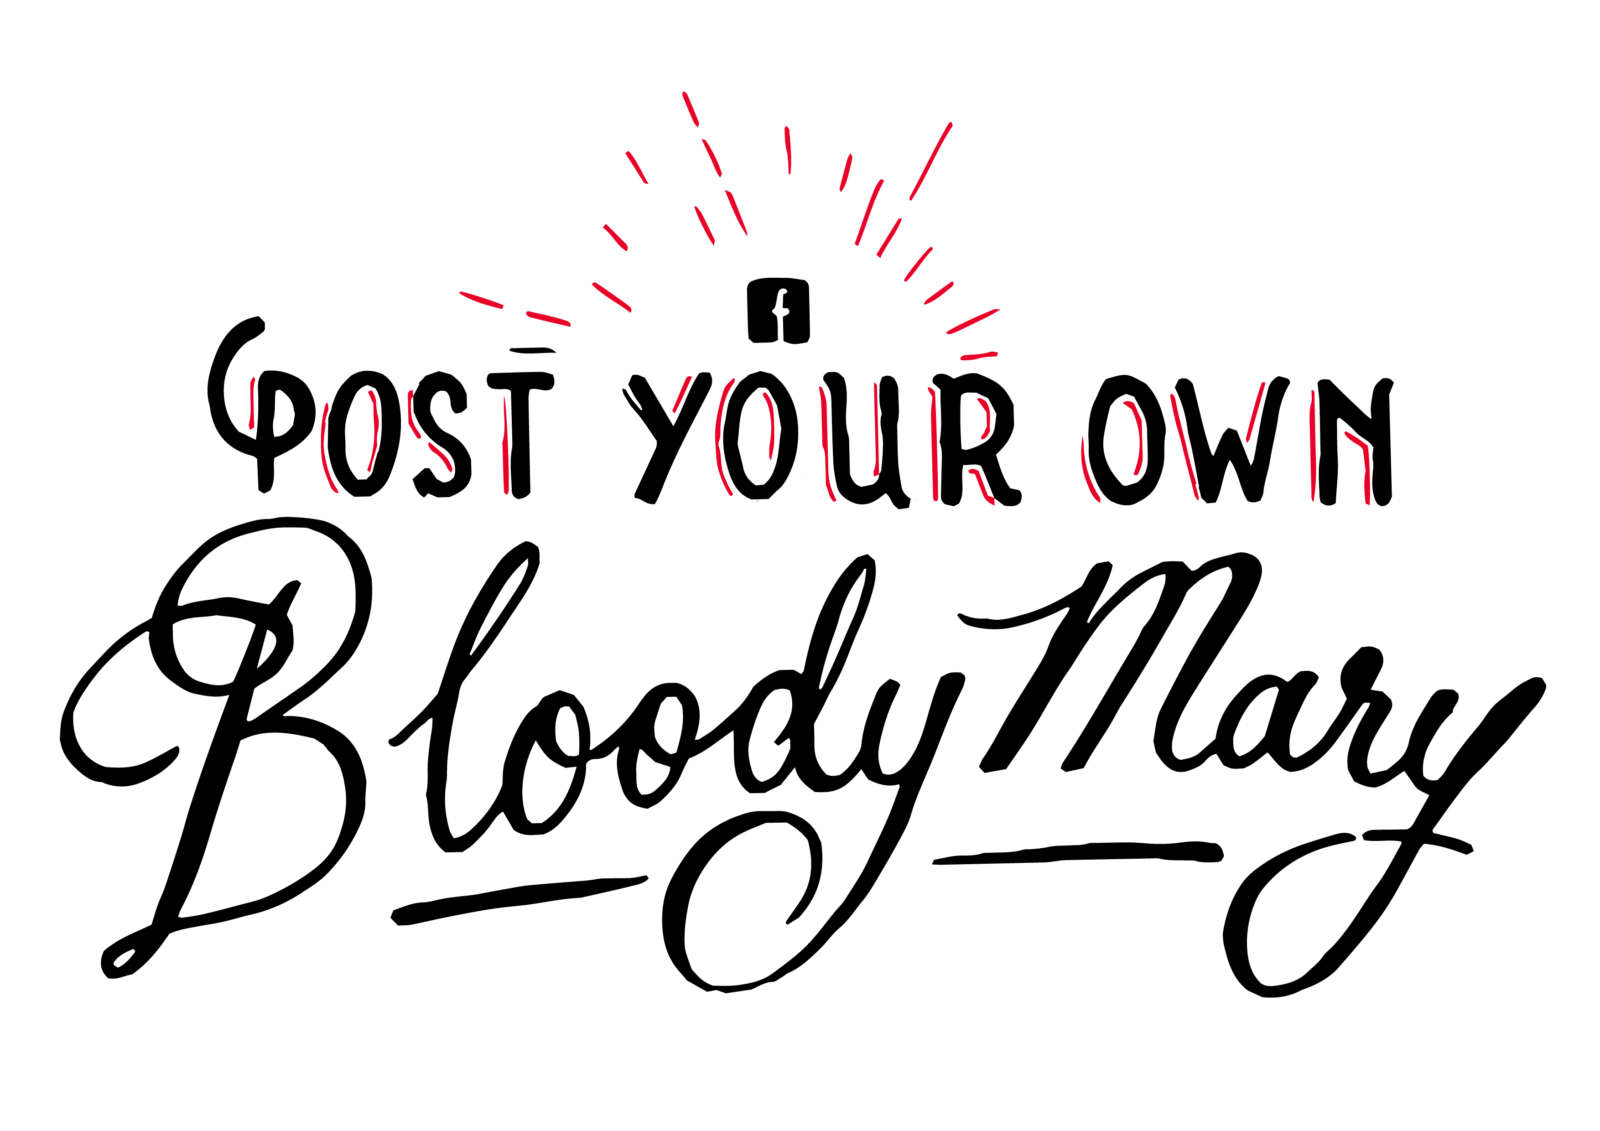 post_your_own_bloody_mary-01